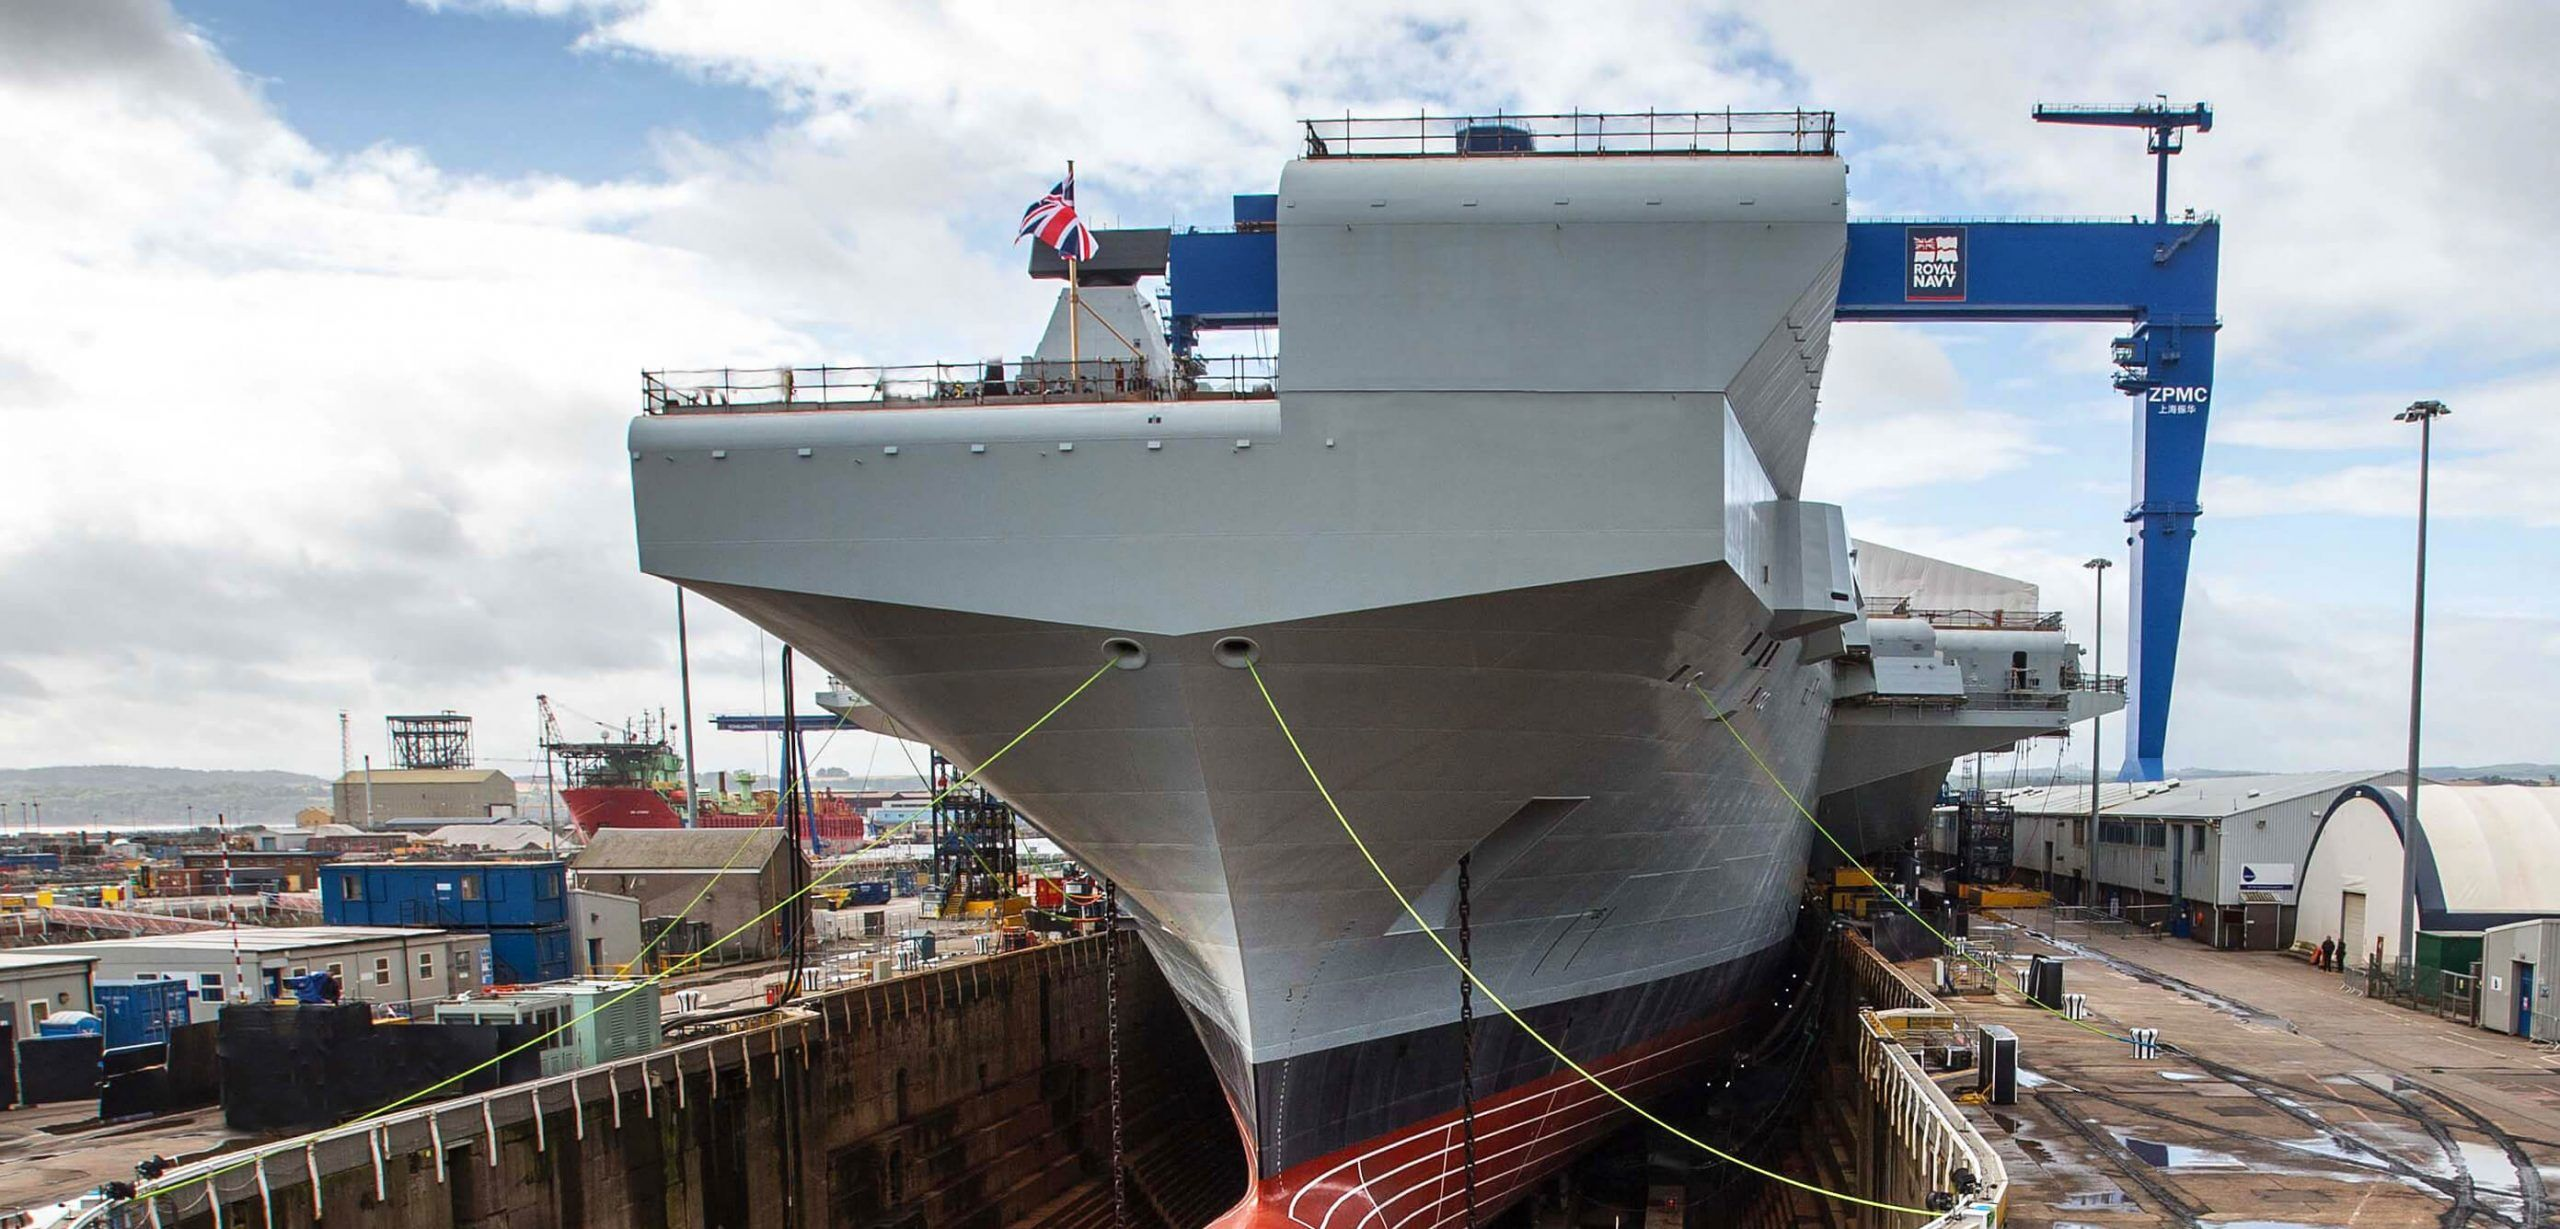 Dry docking the Royal Navy's aircraft carriers – what are the options?